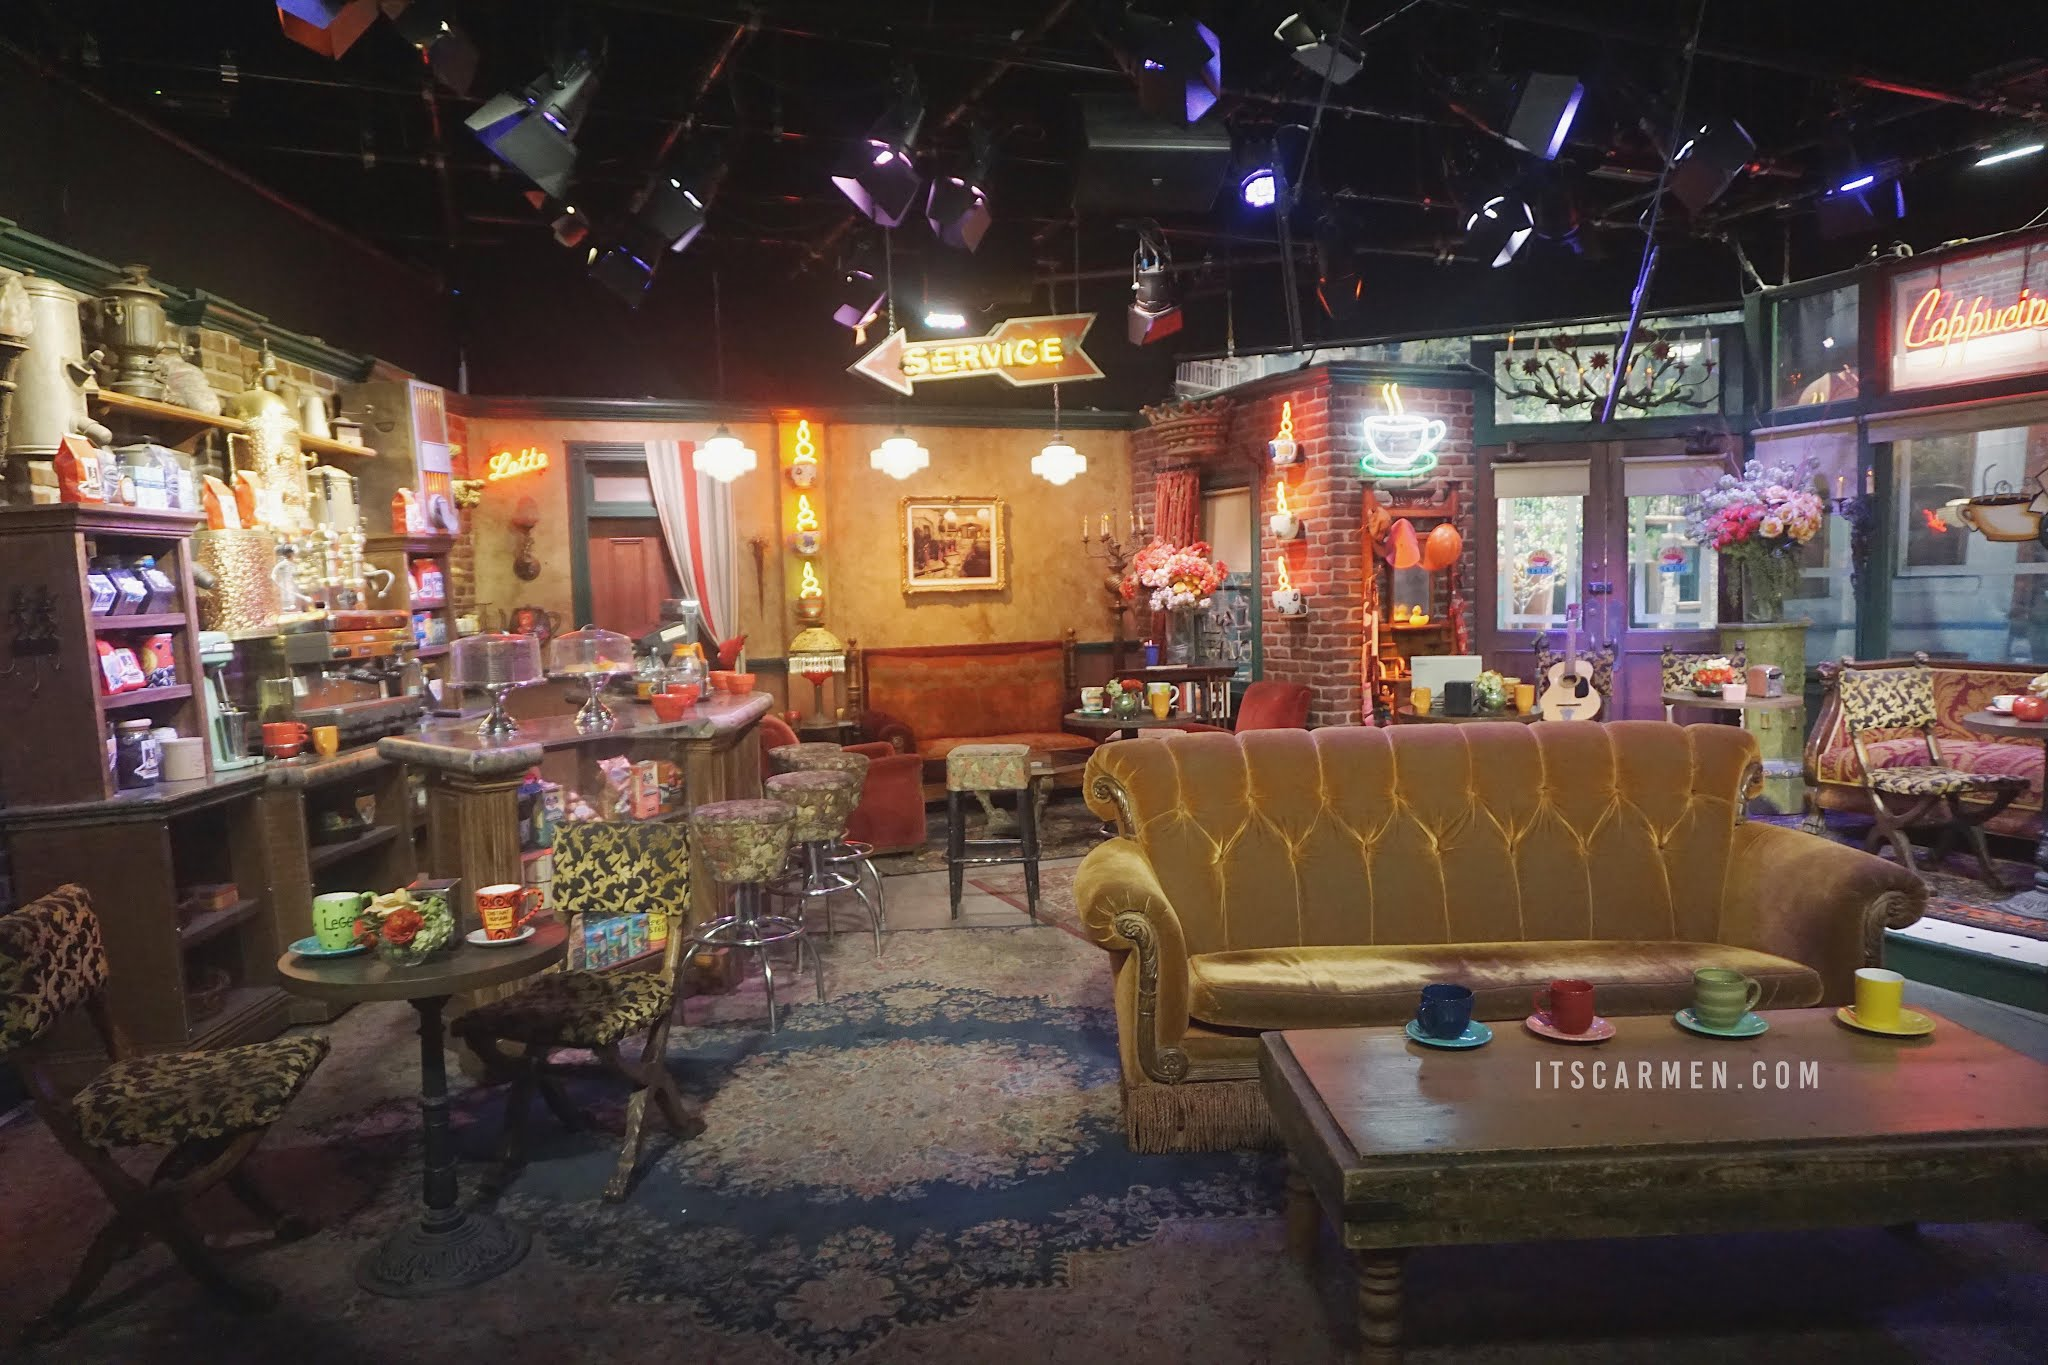 Central Perk Cafe From Friends: Warner Bros Studio Tour set tour friends set central perk central perk friends friends studio friends coffee shop where was friends filmed friends central perk friends cafe central perk set